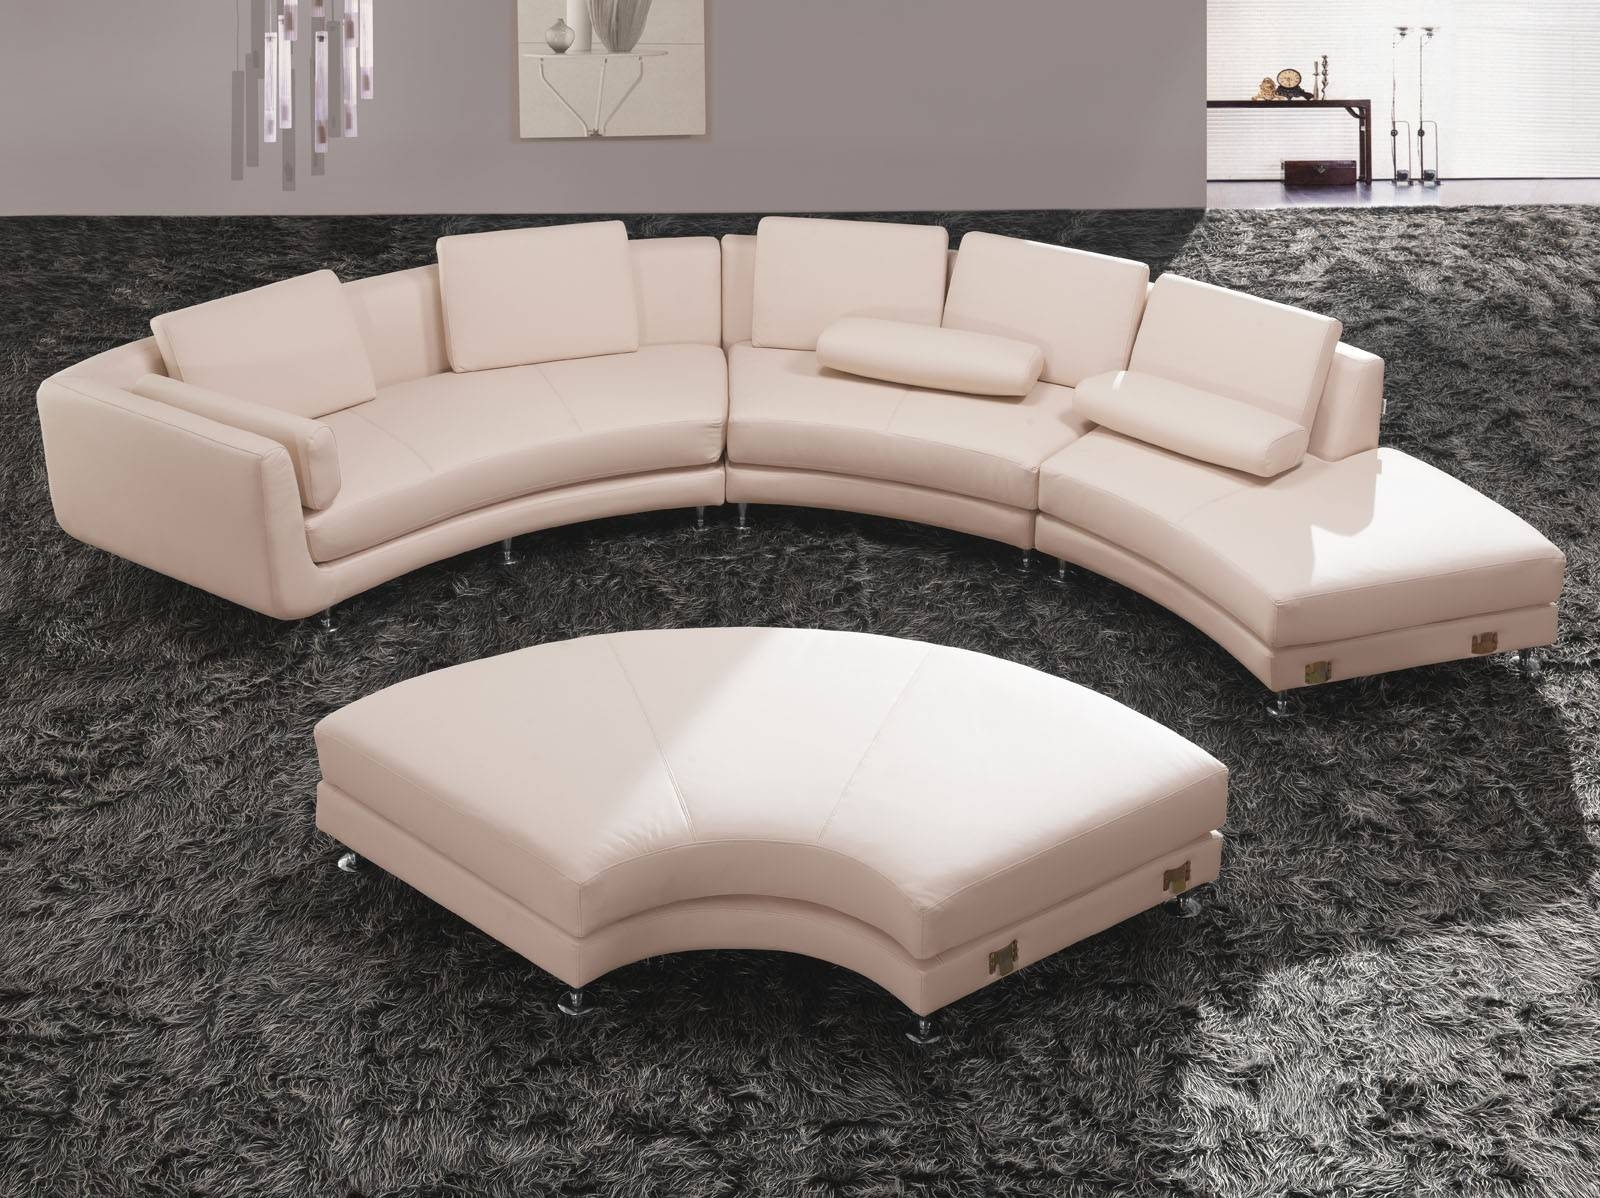 Furniture: Curved Sectional Sofa   Small Curved Couch   Curved throughout Small Curved Sectional Sofas (Image 7 of 15)